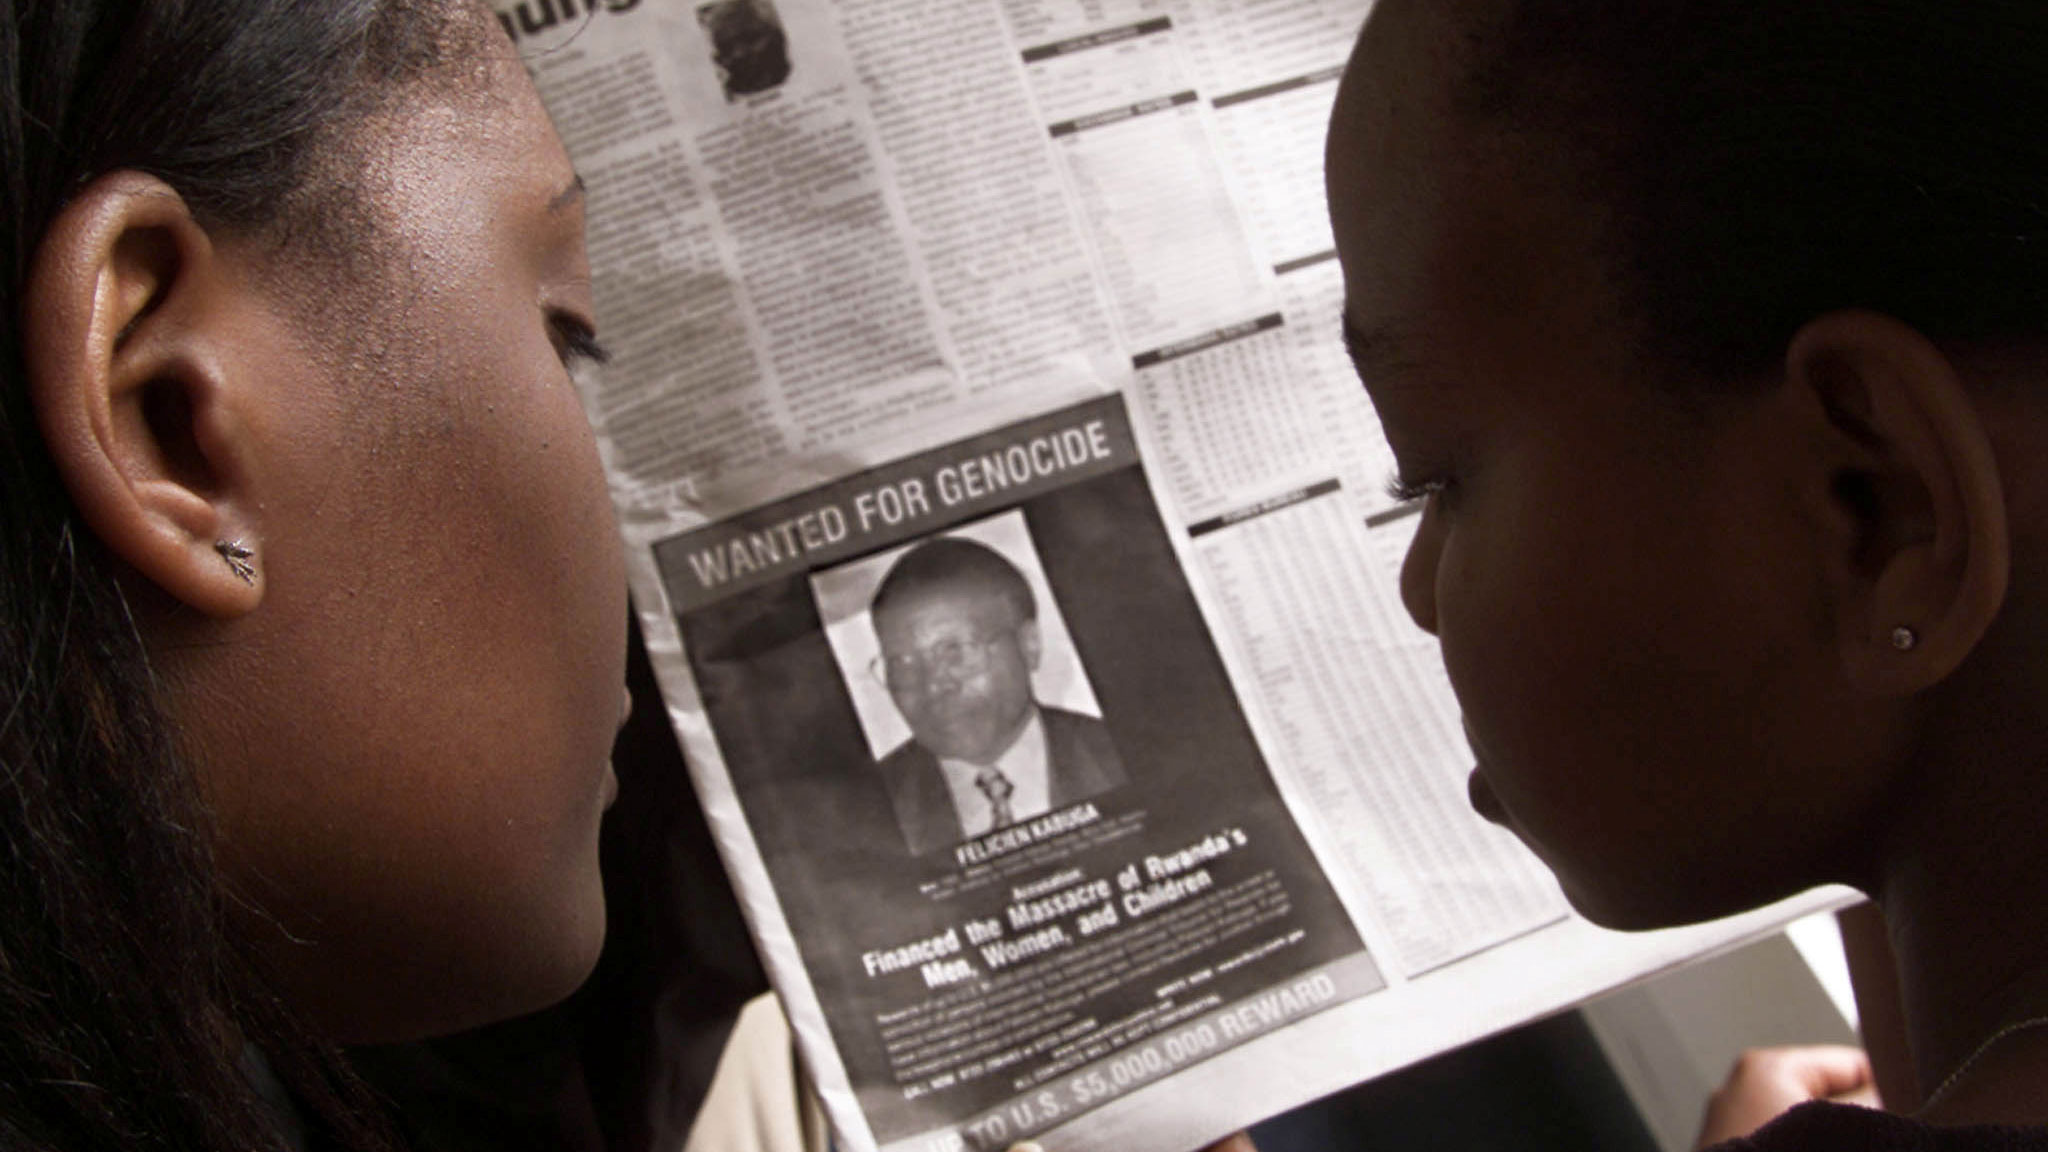 Two people are shown from behind looking at a newspaper featuring a photograph of Rwandan Felicien Kabuga.